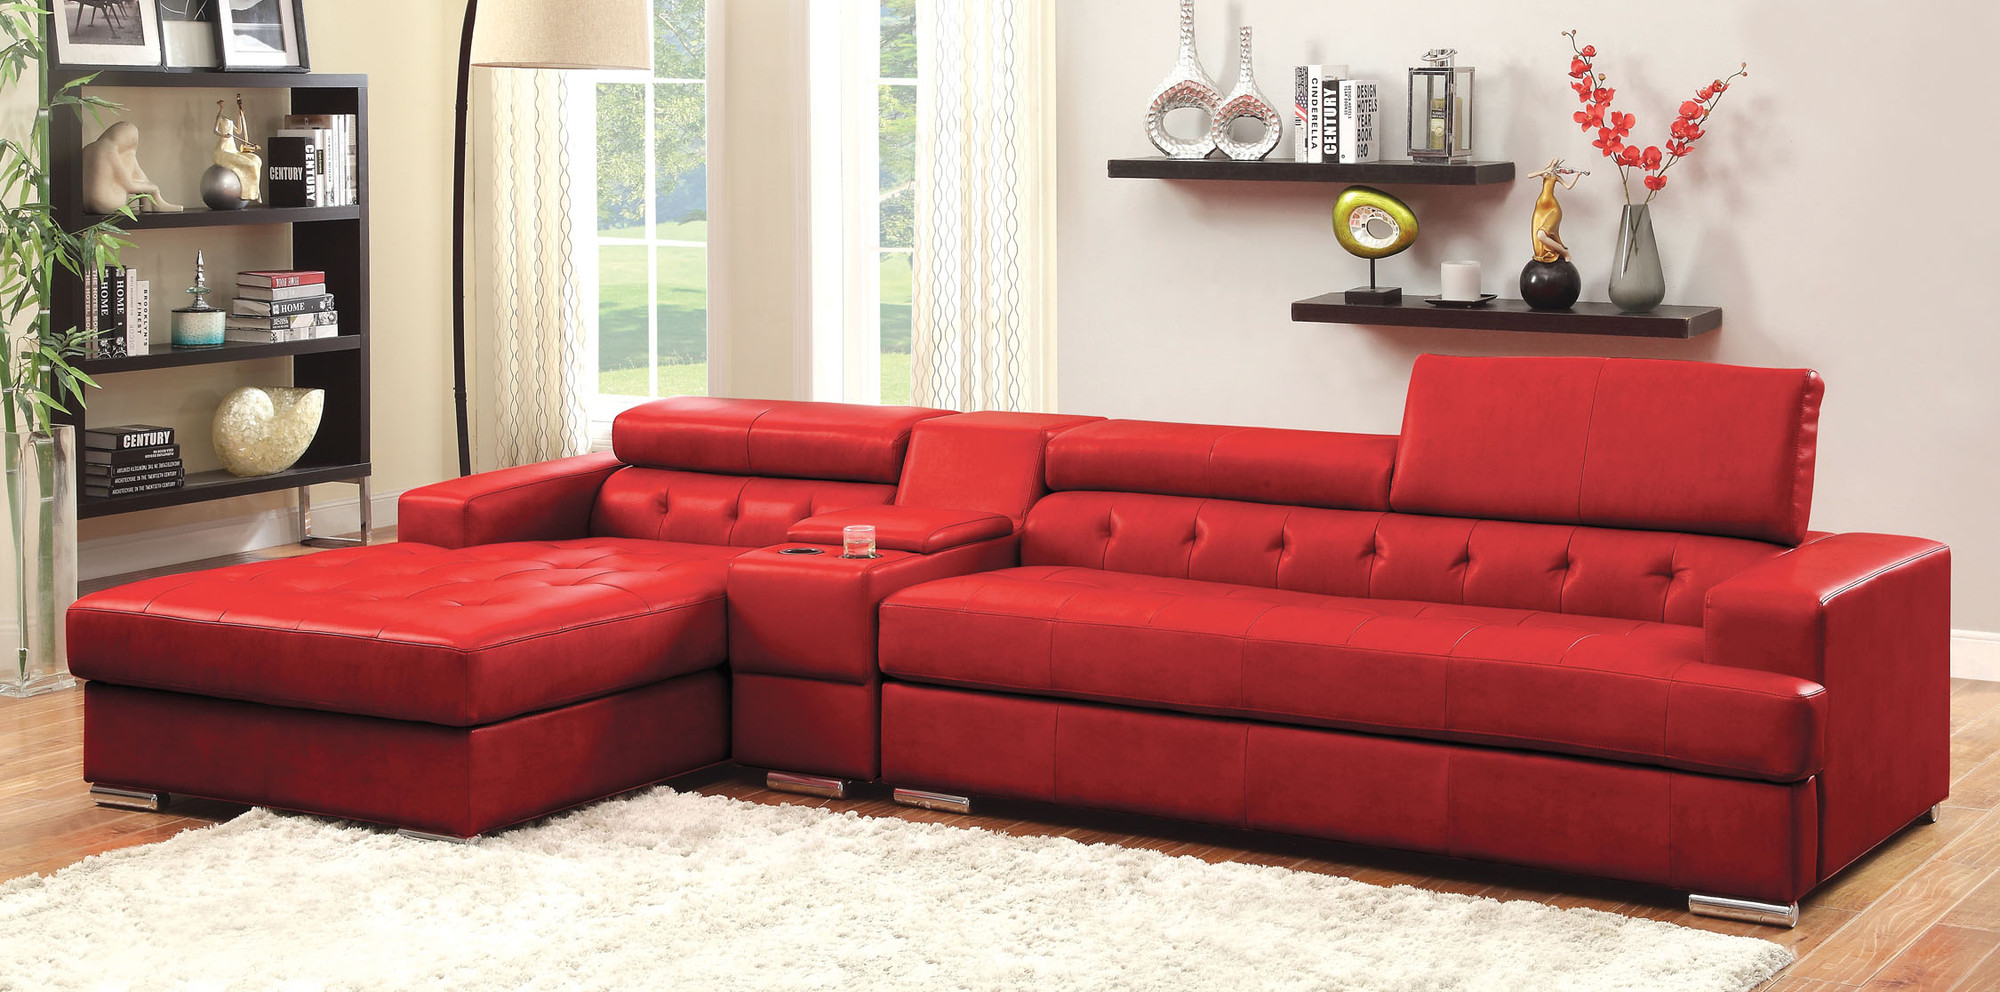 Sectional Sleeper Sofa | Deep Sectional Sofa | Queen Sleeper Sofa